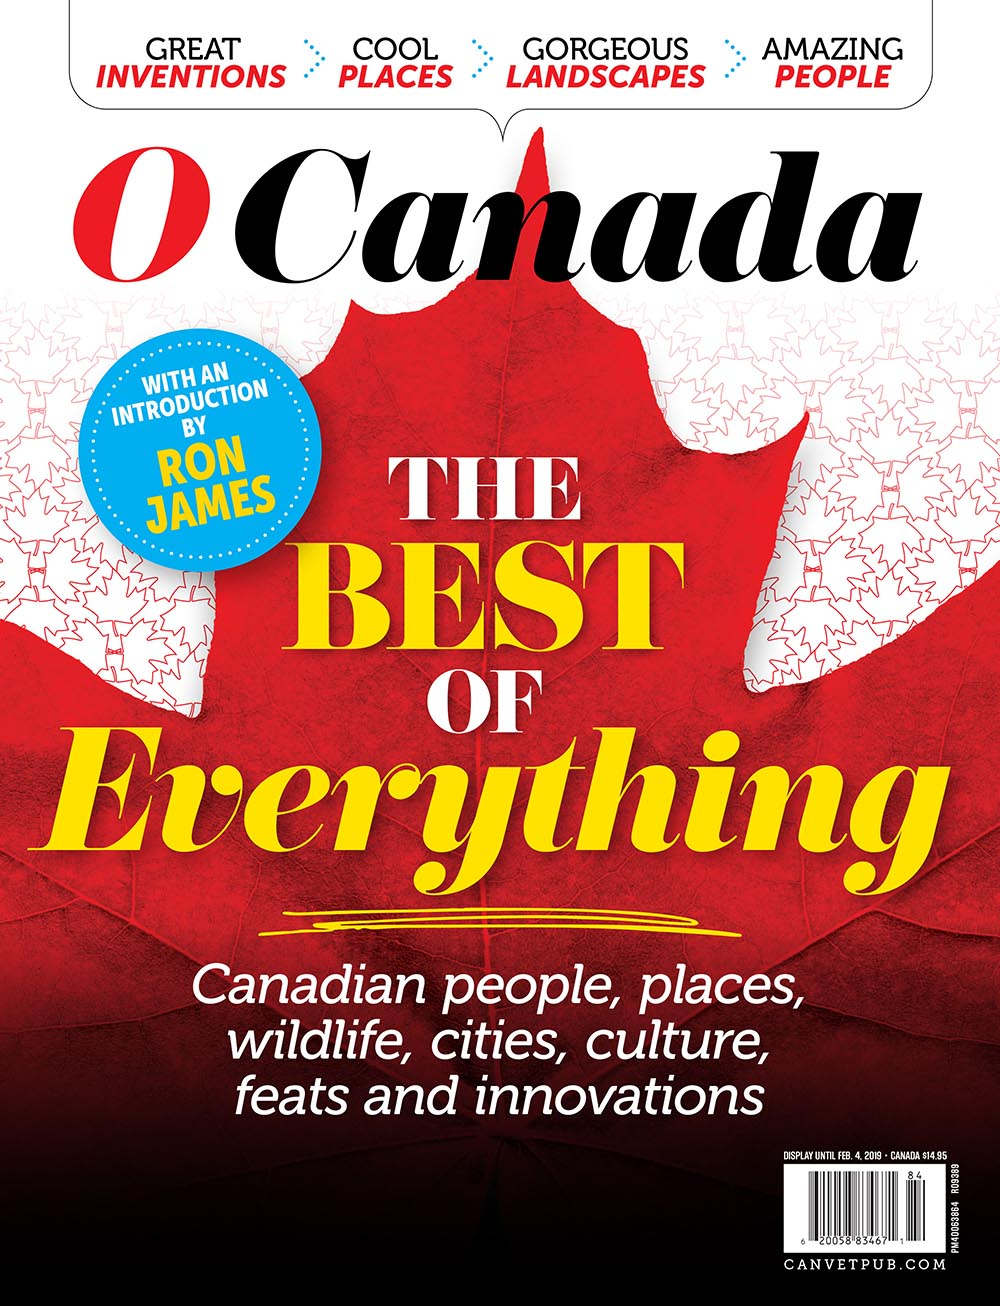 Canada—The Best of Everything